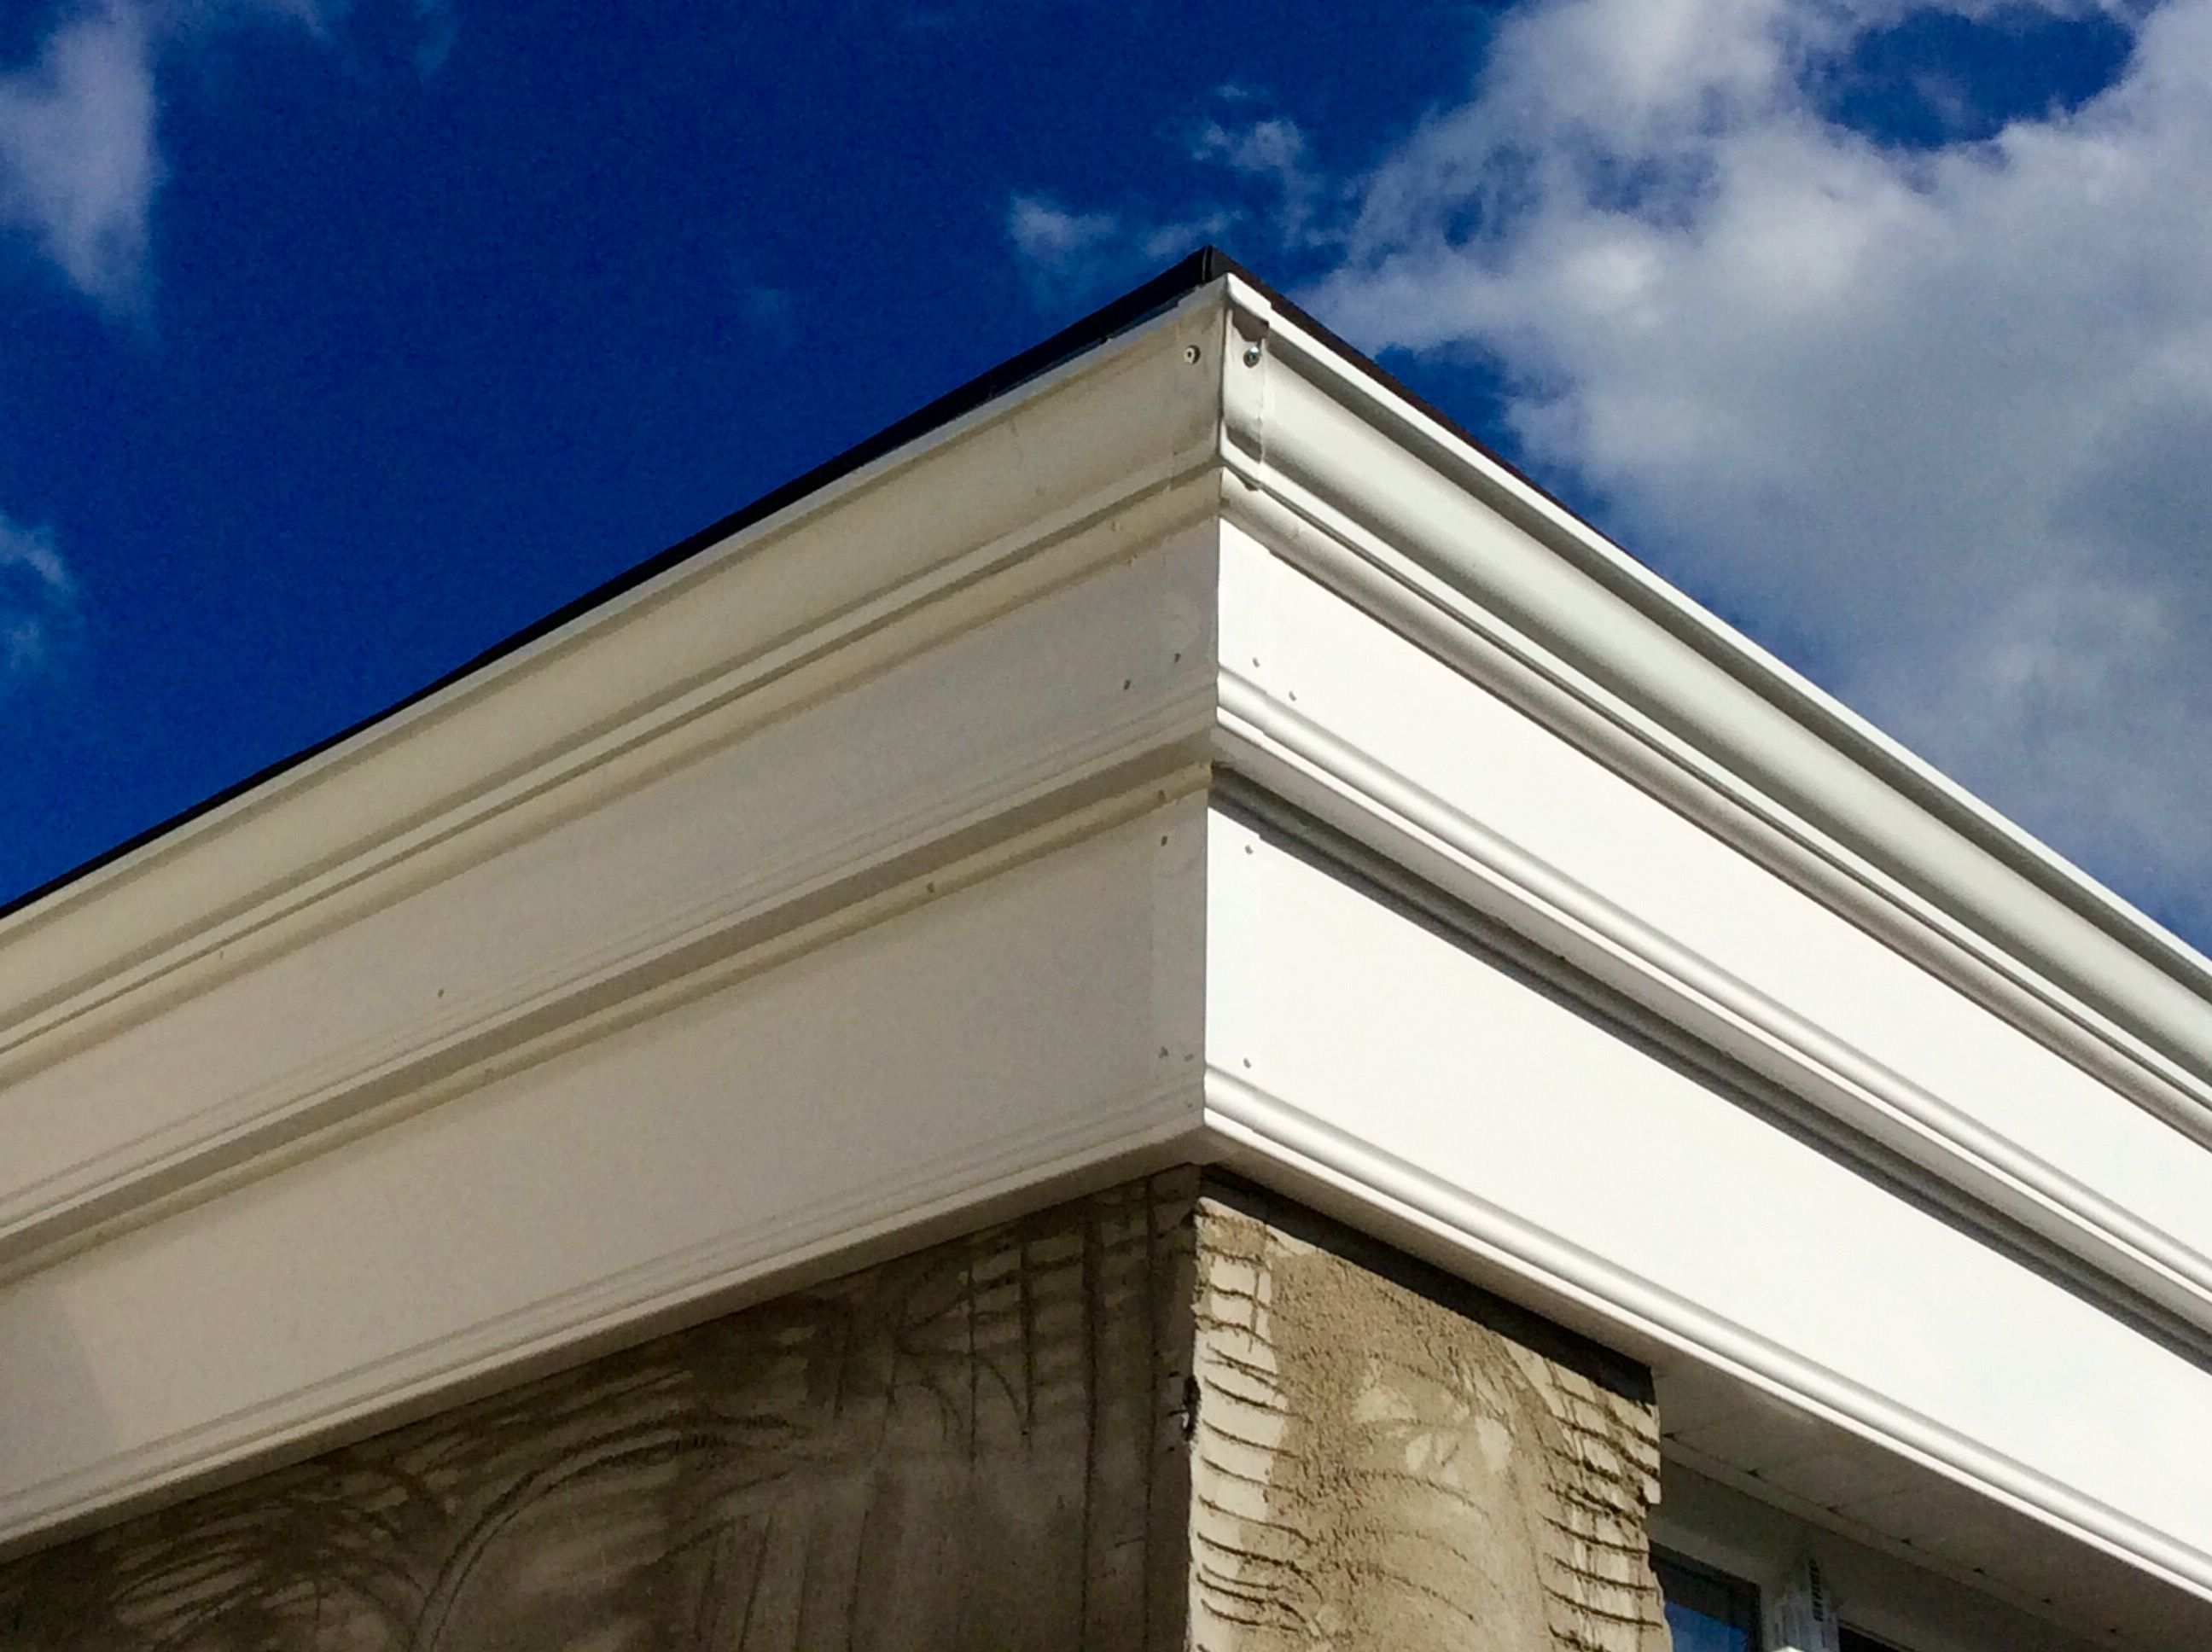 seamless gutters with PVC fascia boards on a orangery style